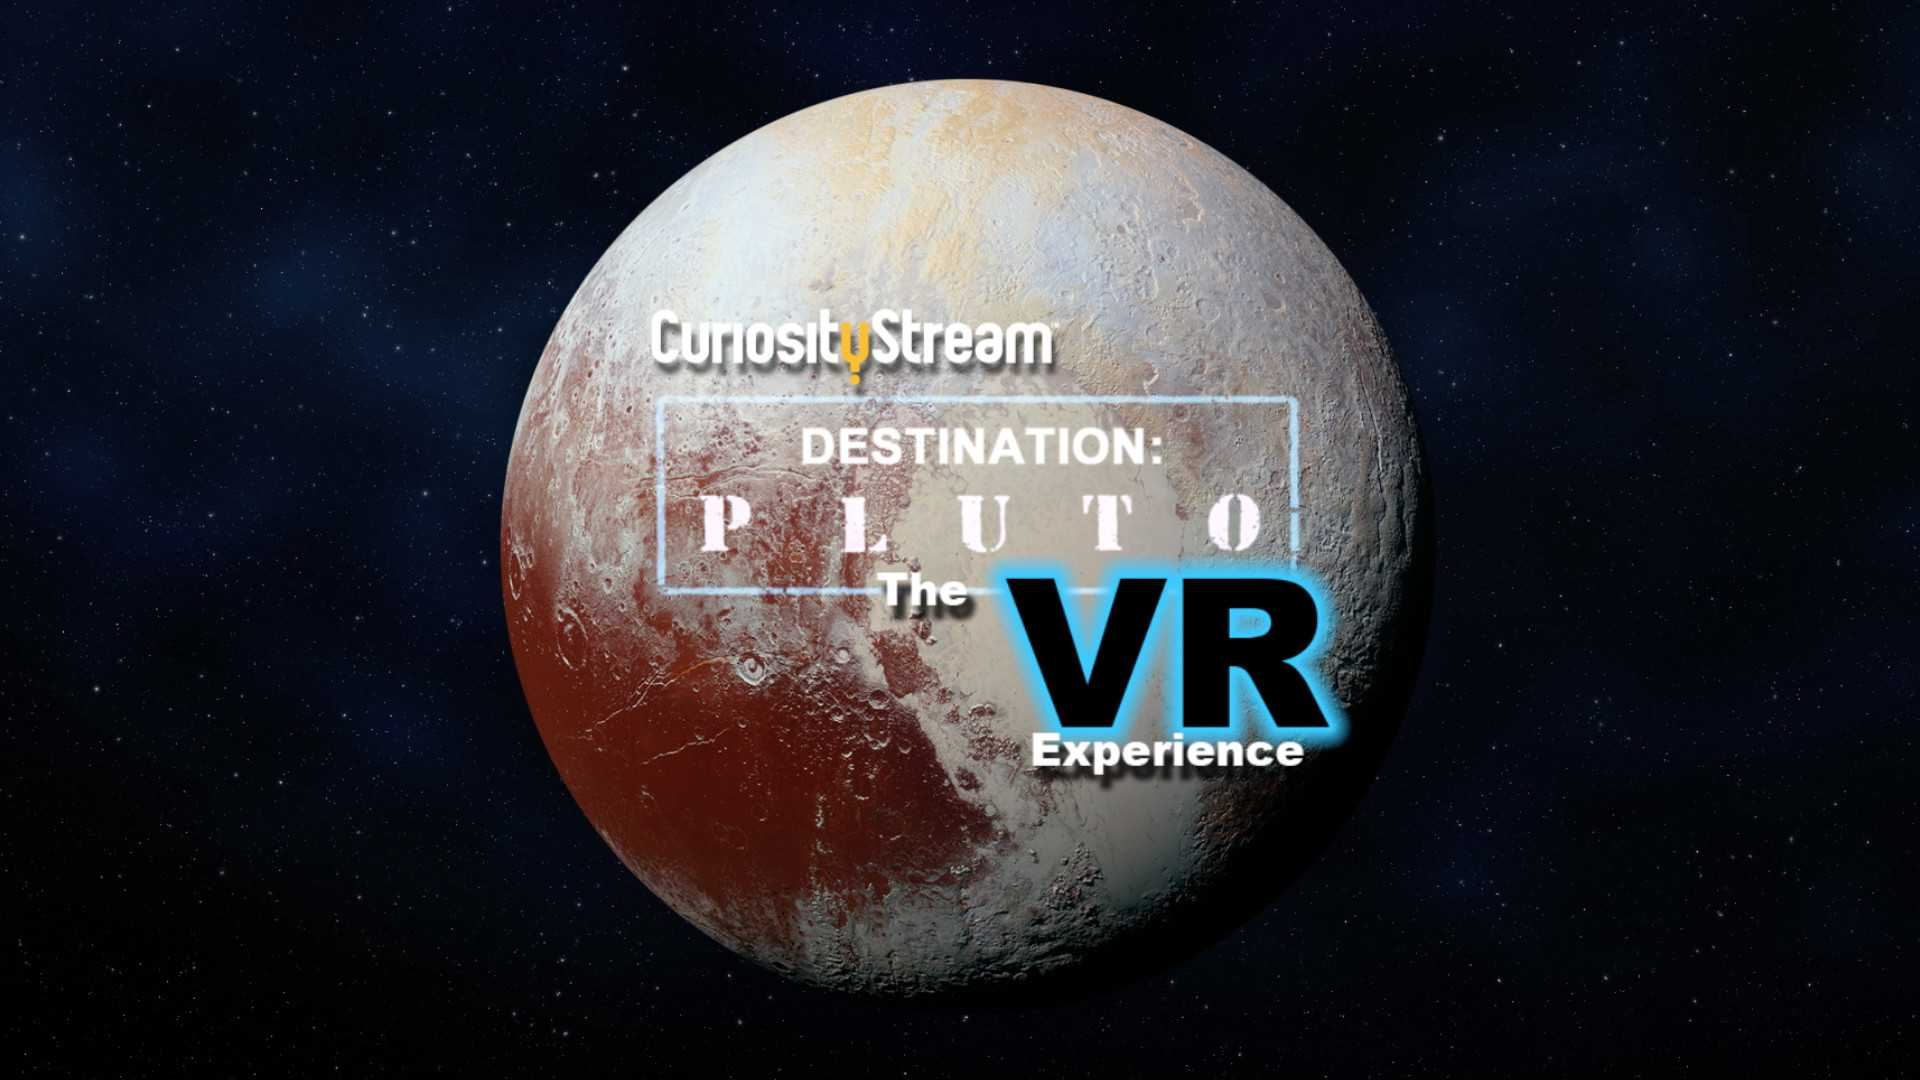 Destination: Pluto The VR Experience